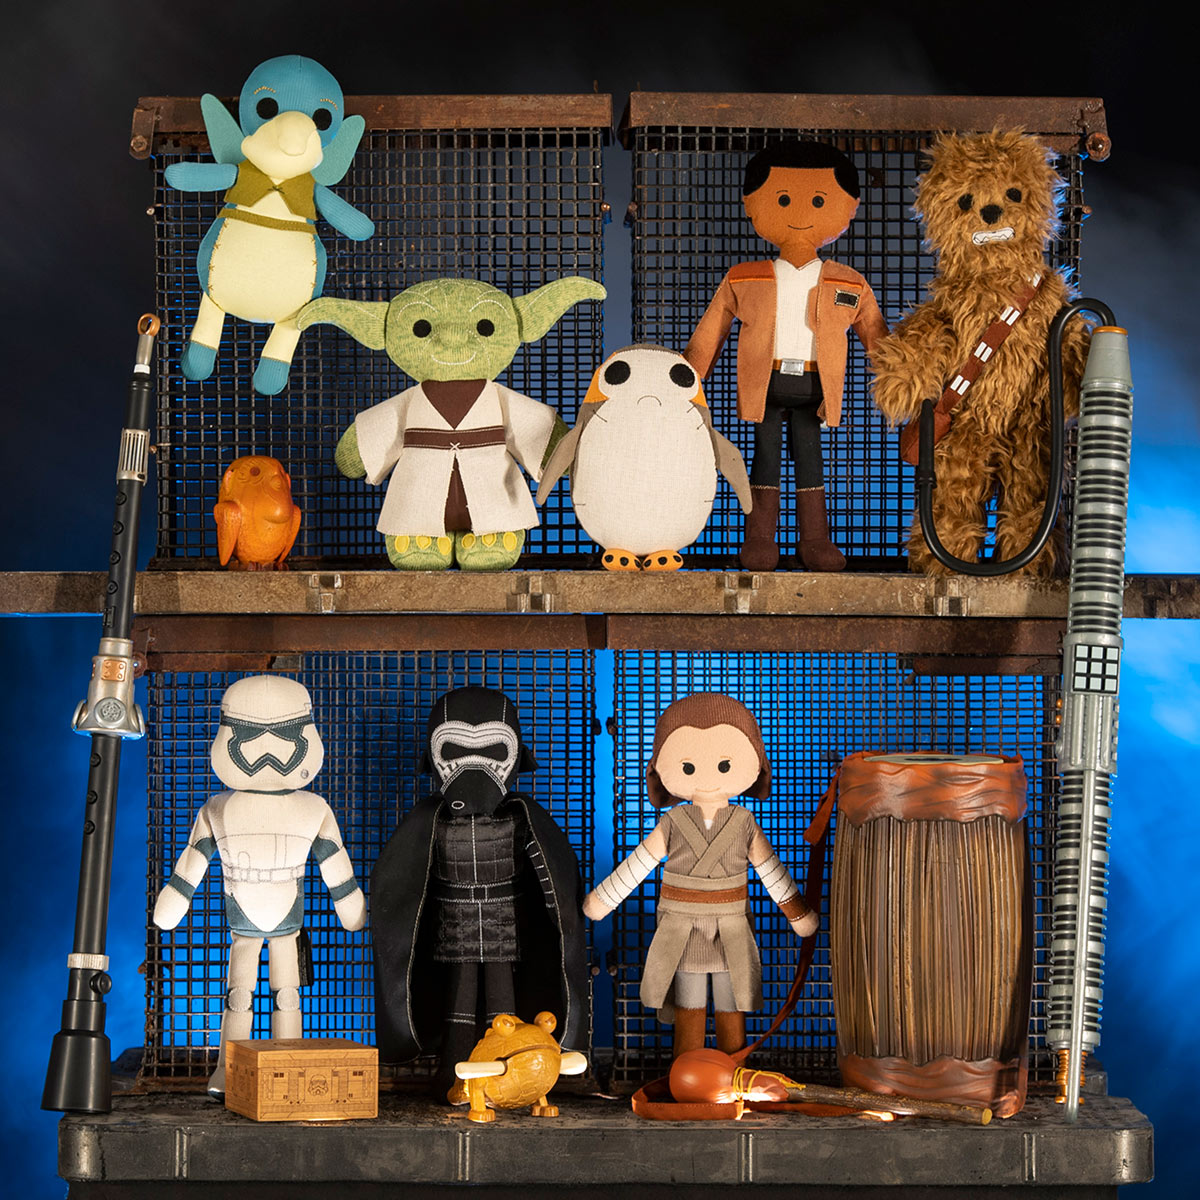 Toy shop on Batuu